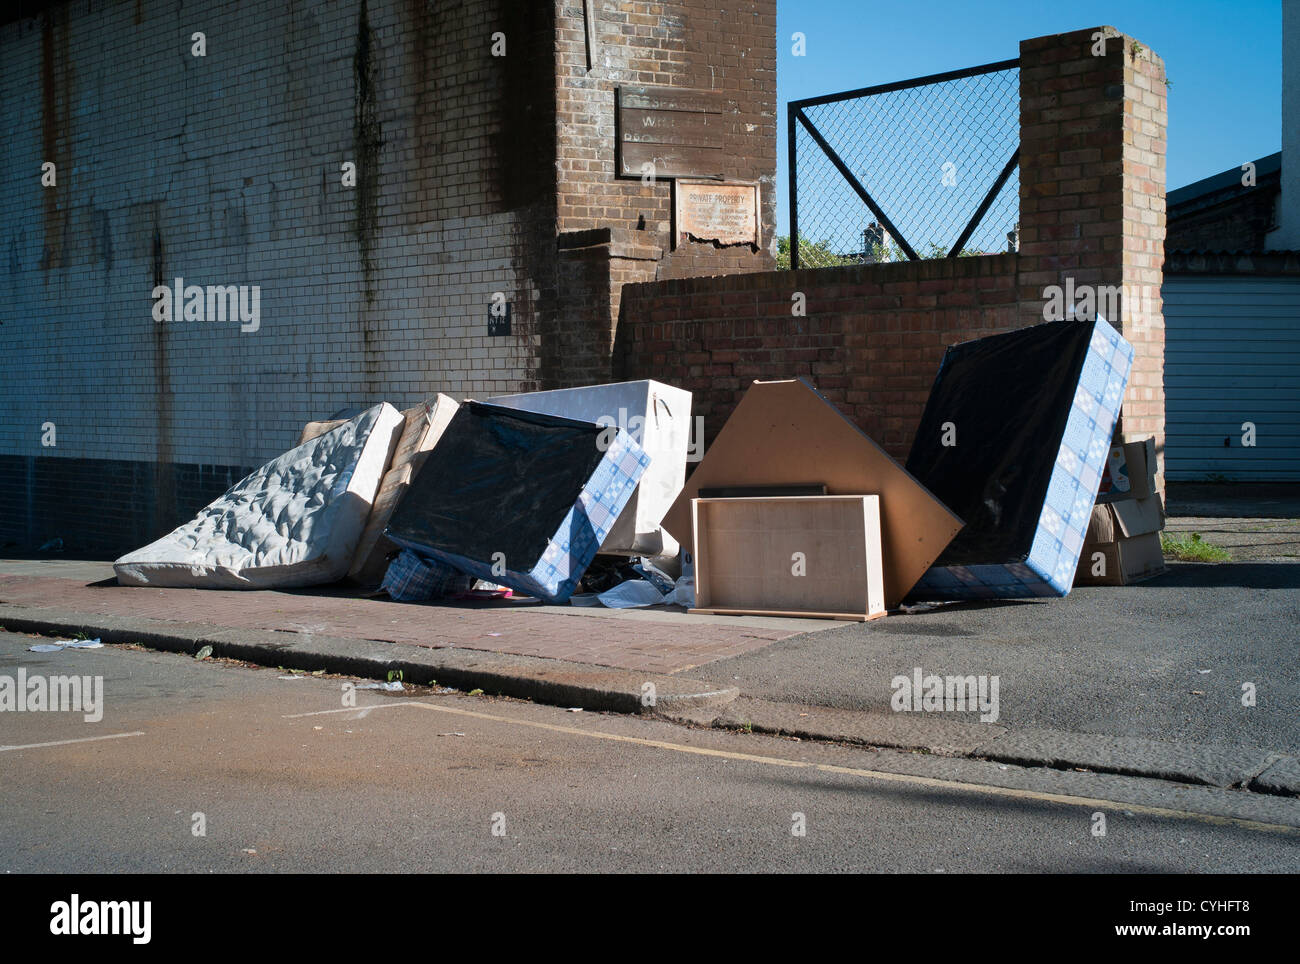 Fly tipping of old beds, and mattresses on pavement in Brent Cross, Golders Green, London. - Stock Image